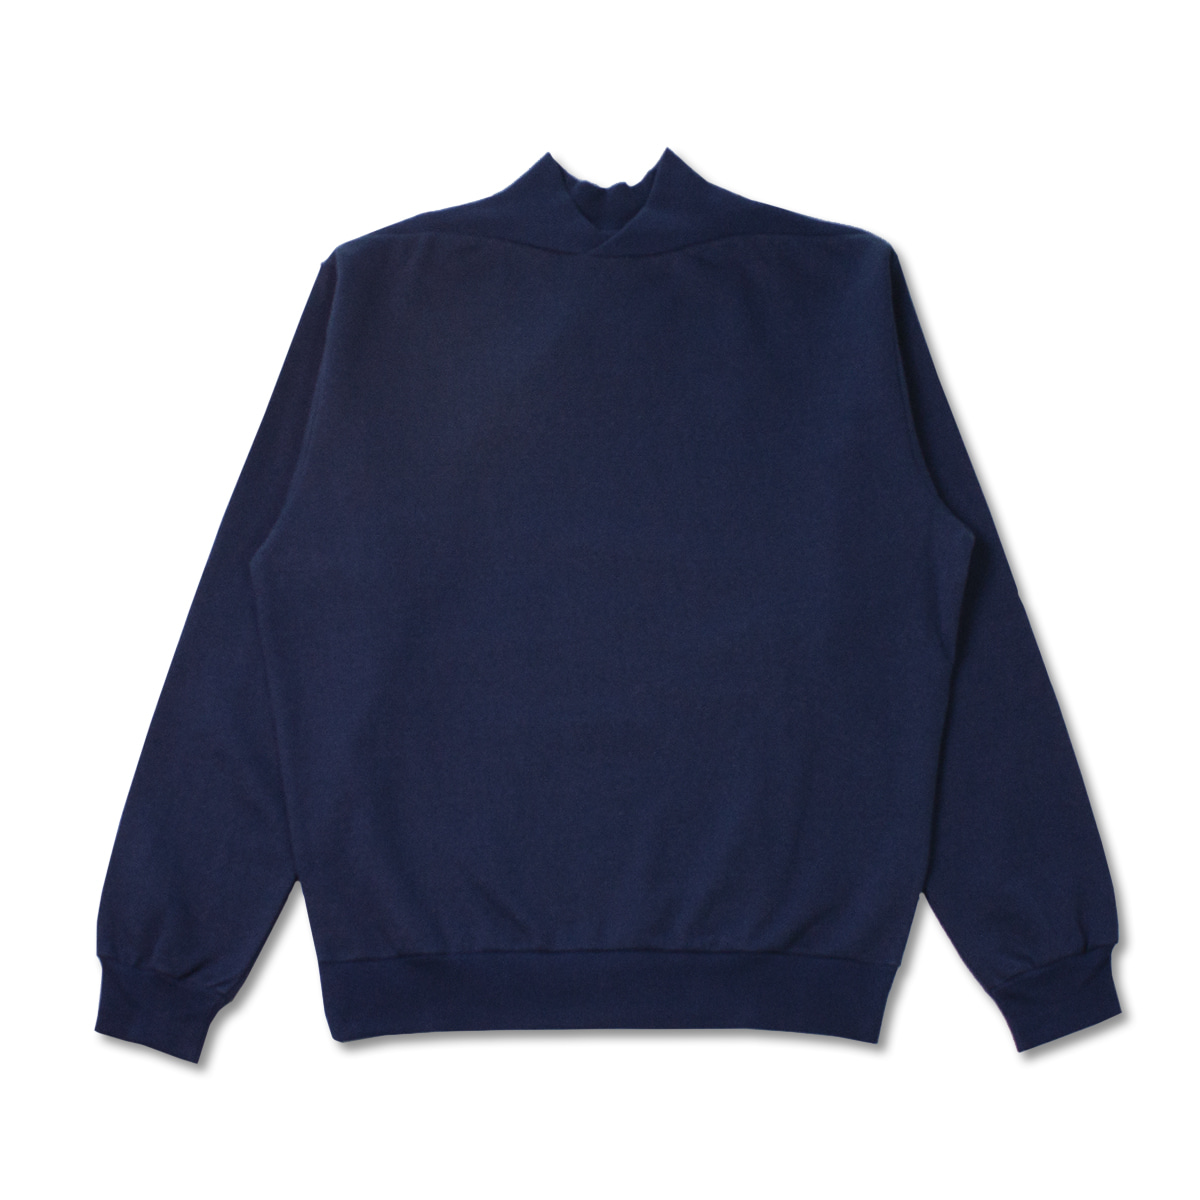 [DE BONNE FACTURE] SUPIMA COTTON FLEECE SWEATSHIRT 'NAVY'